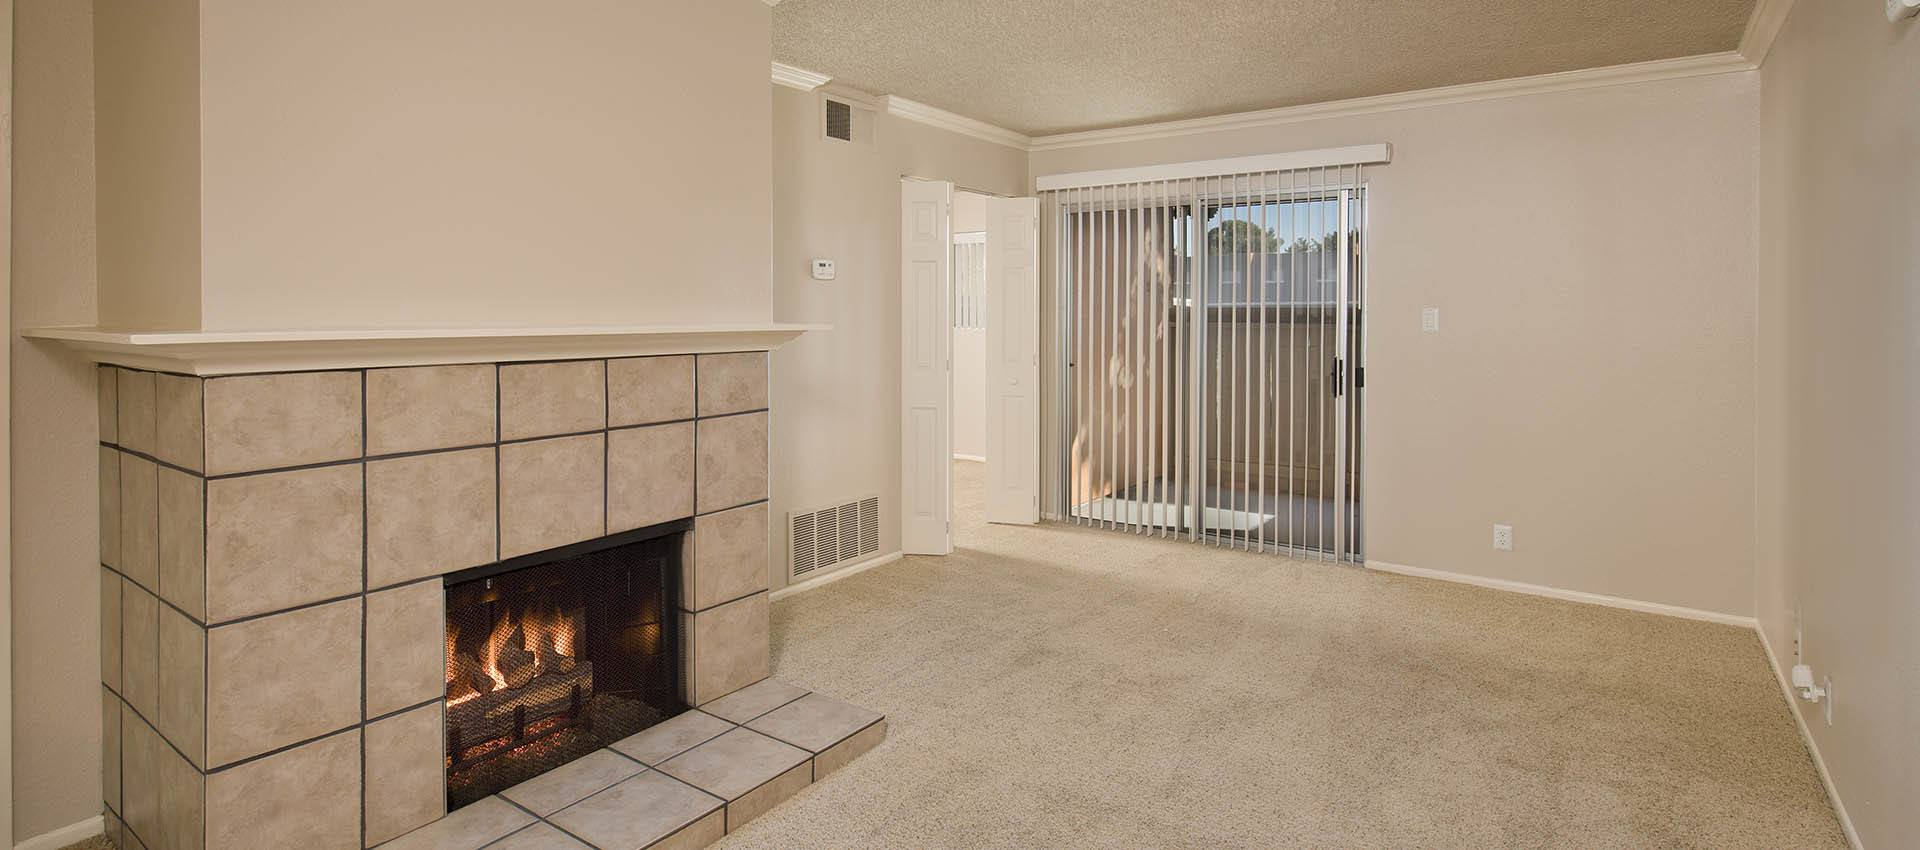 Living Room With Fireplace at La Valencia Apartment Homes in Campbell, California